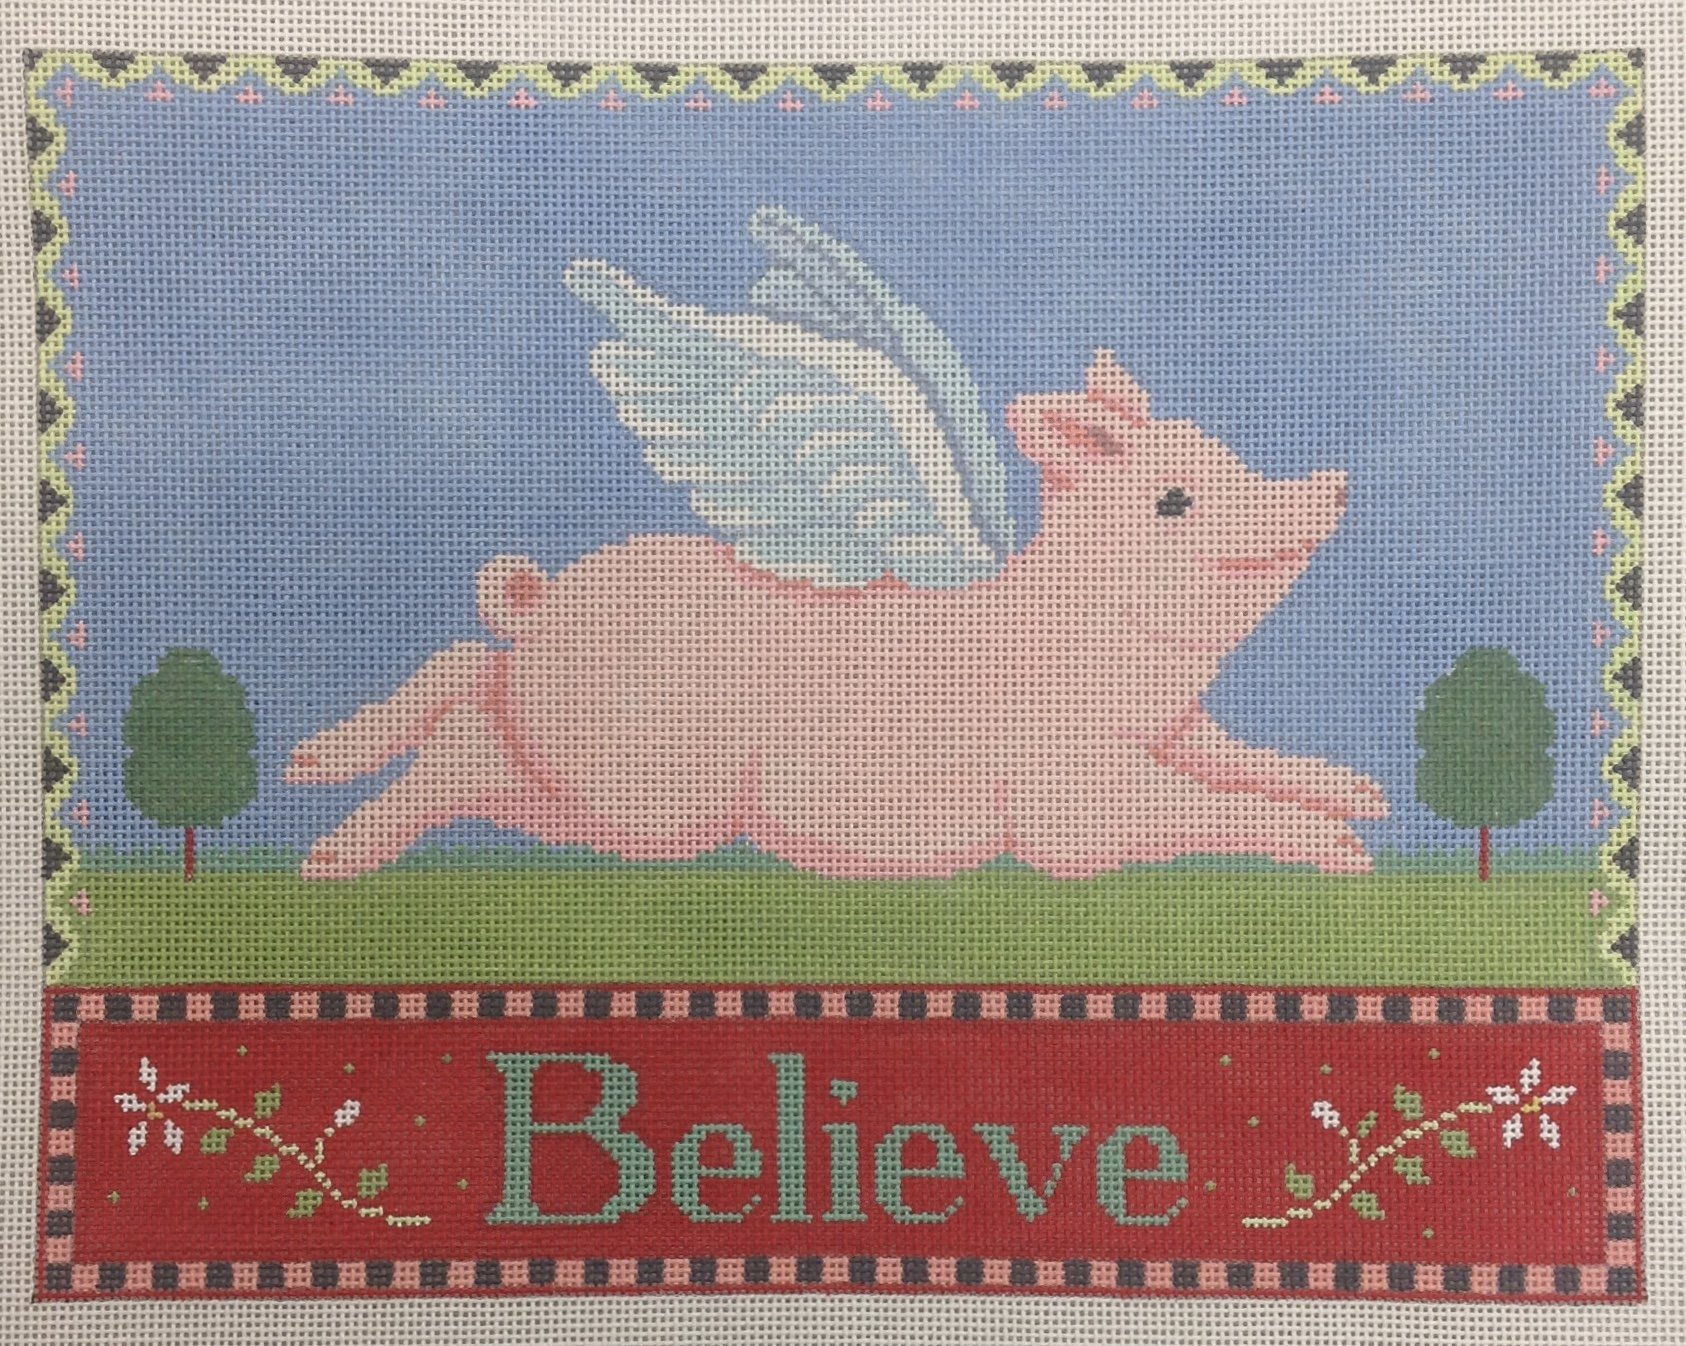 believe (pigs can fly)